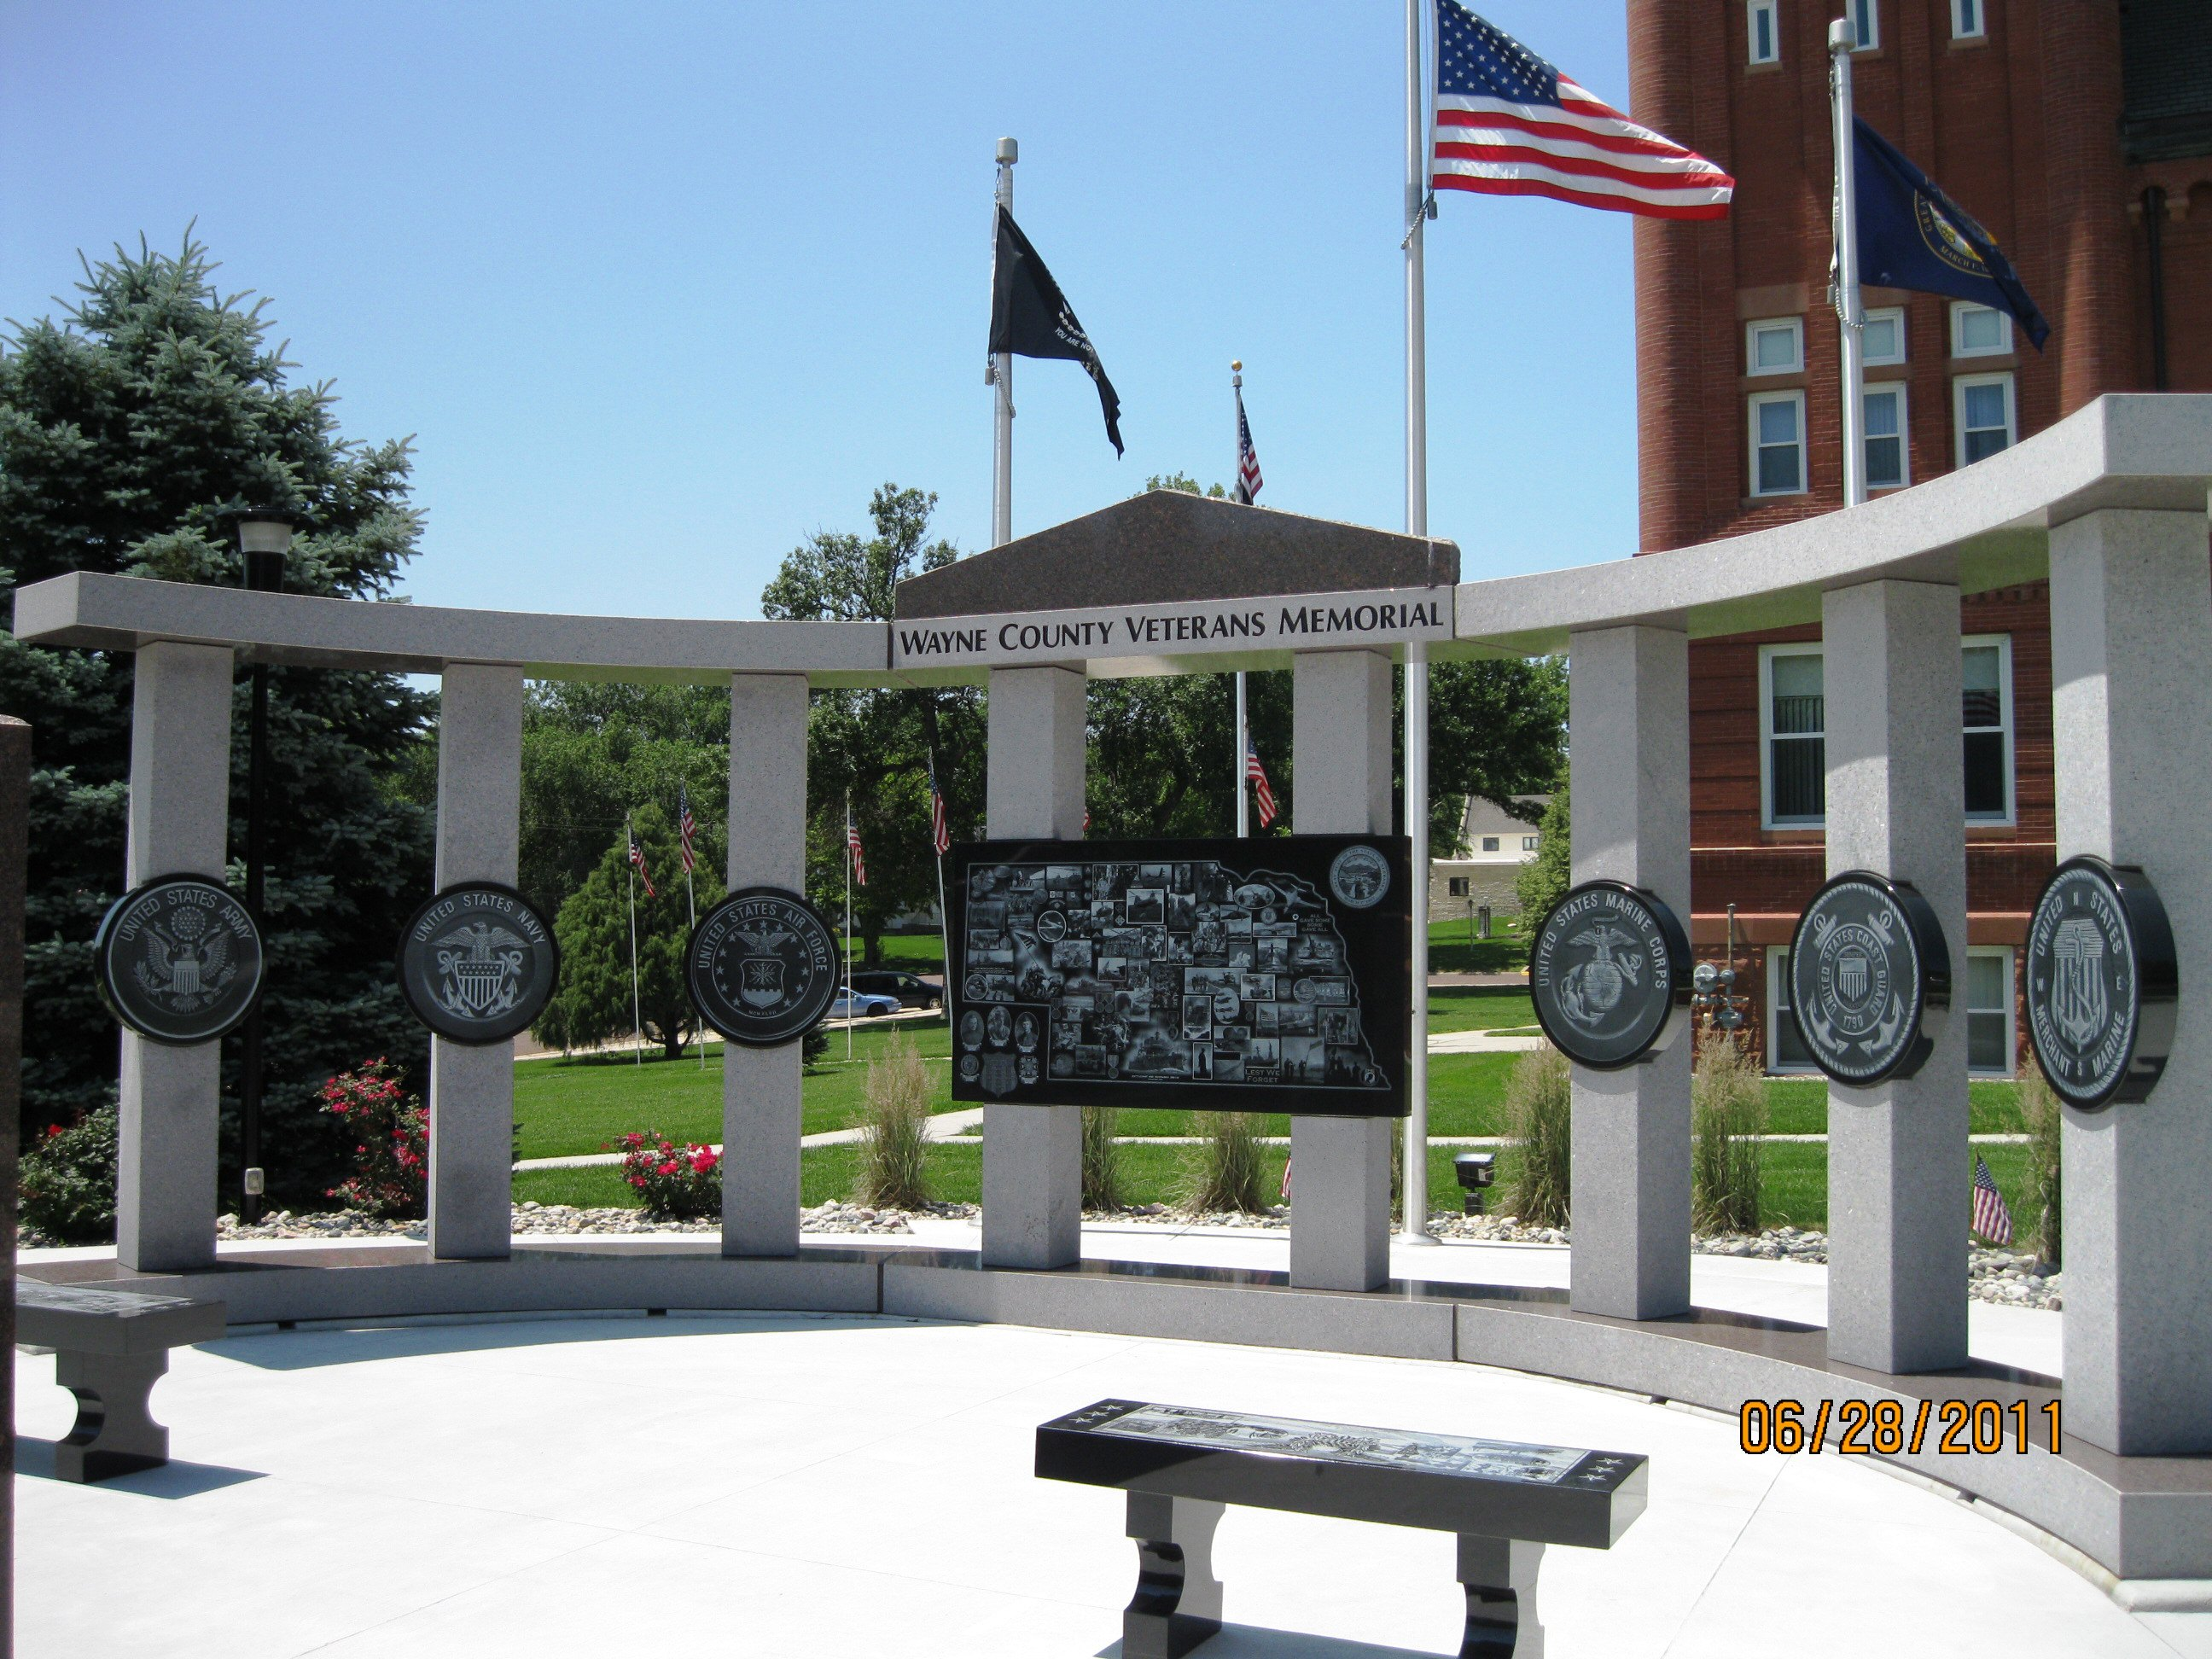 Wayne County Veterans Memorial